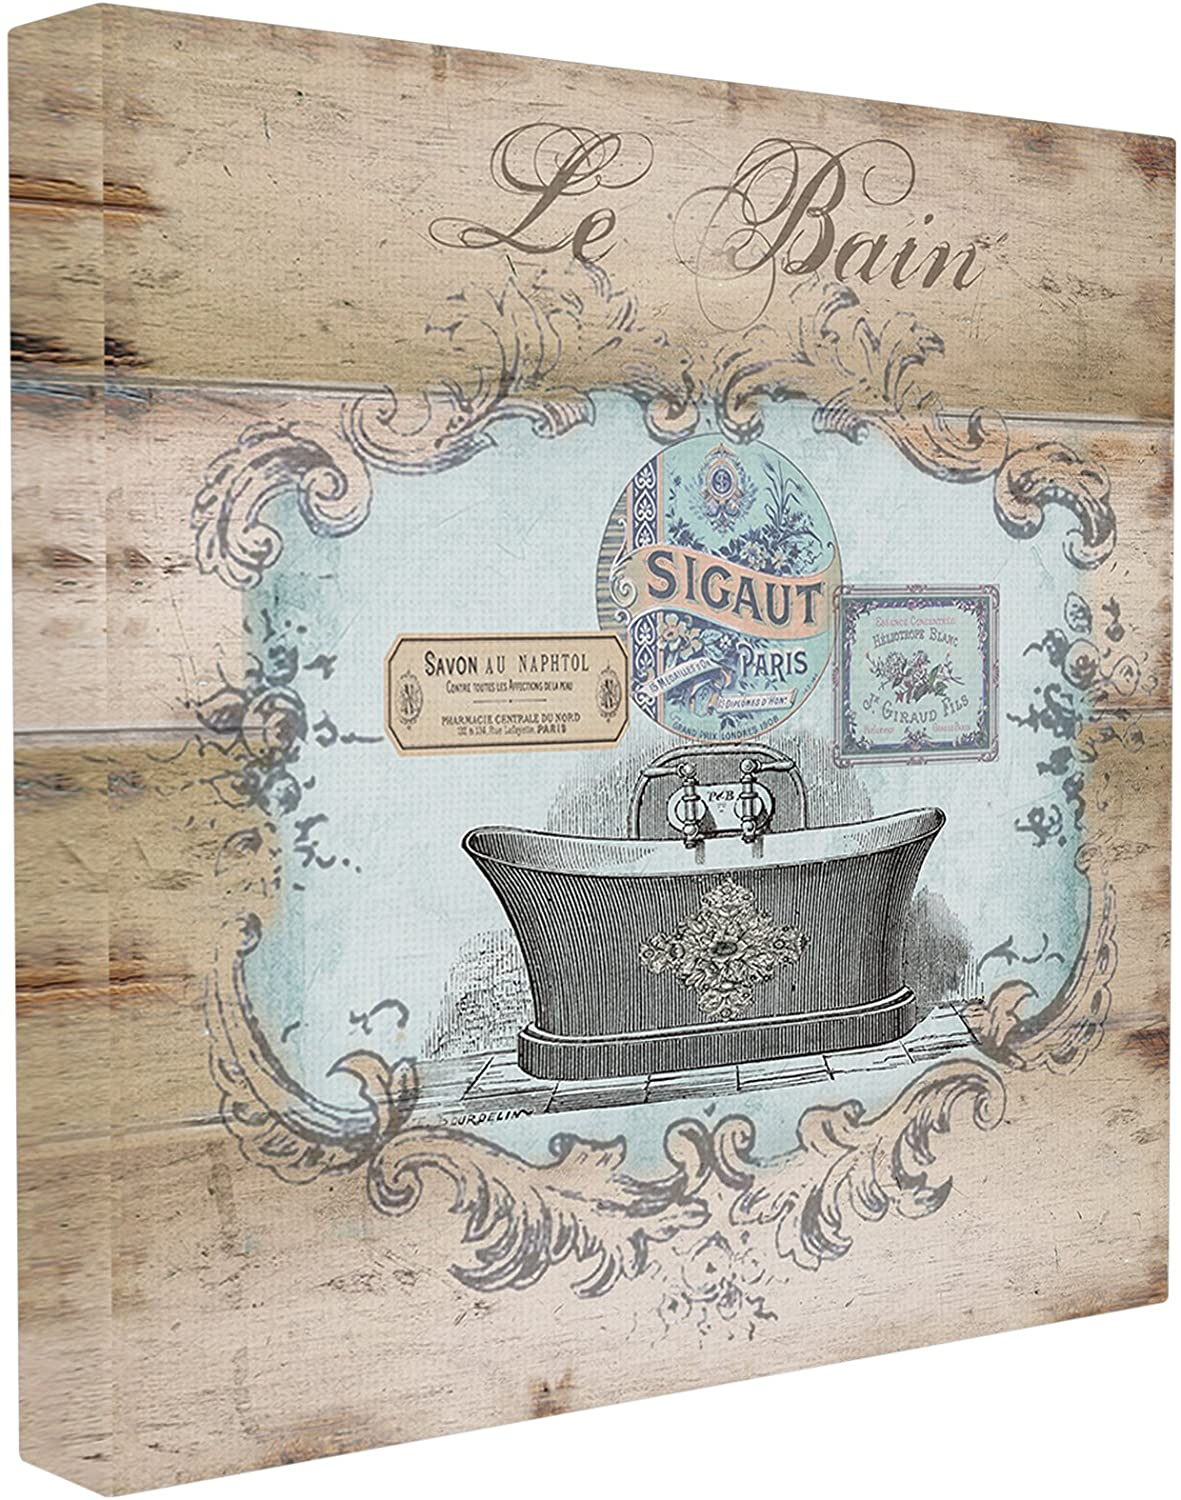 Stupell Home Décor Le Bain Wood Look Bath Stretched Canvas Wall Art, 17 x 1.5 x 17, Proudly Made in USA